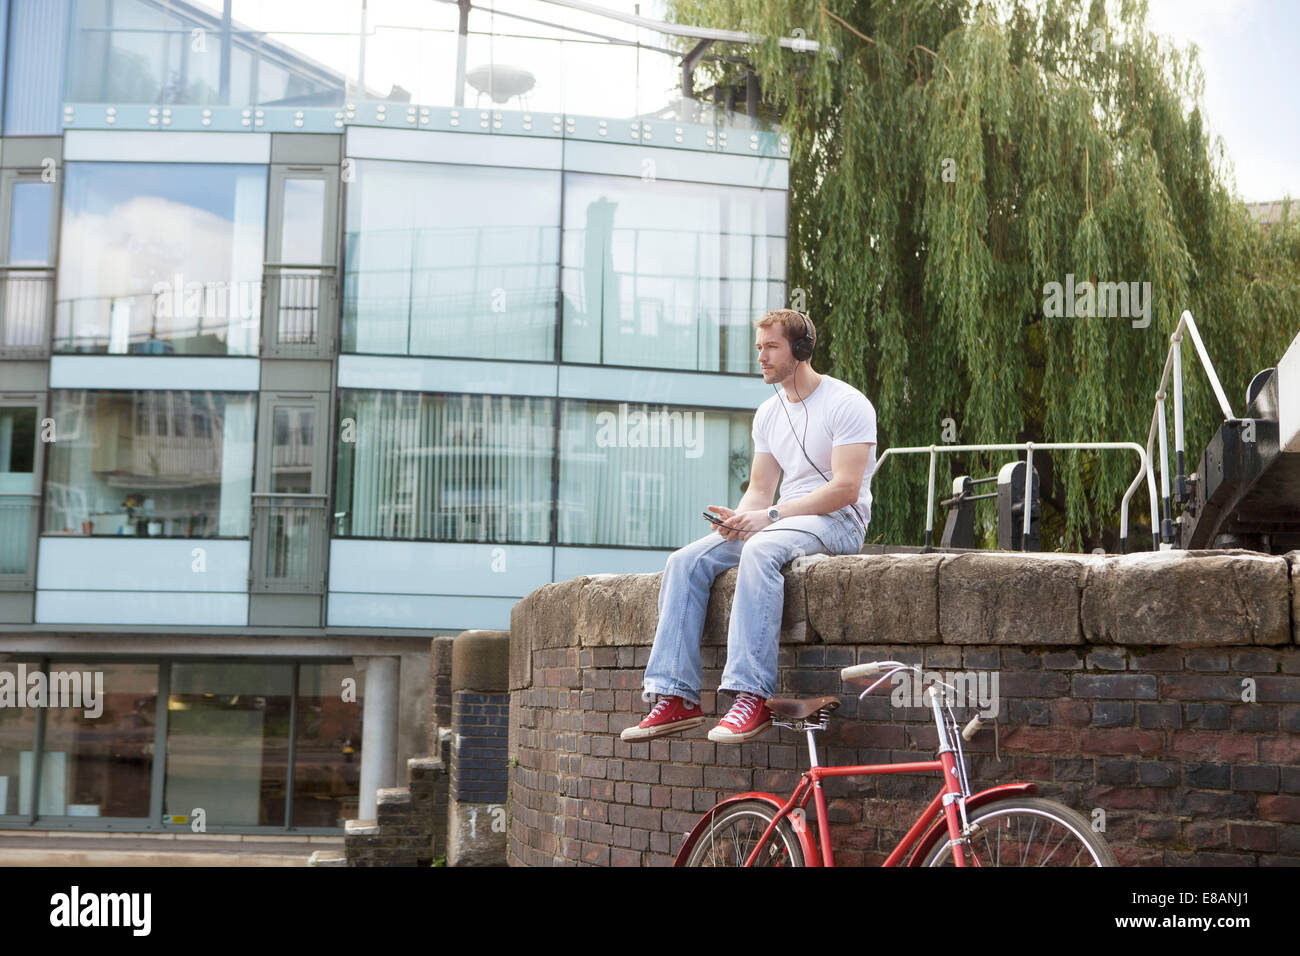 Man listening to music by canal, East London, UK - Stock Image